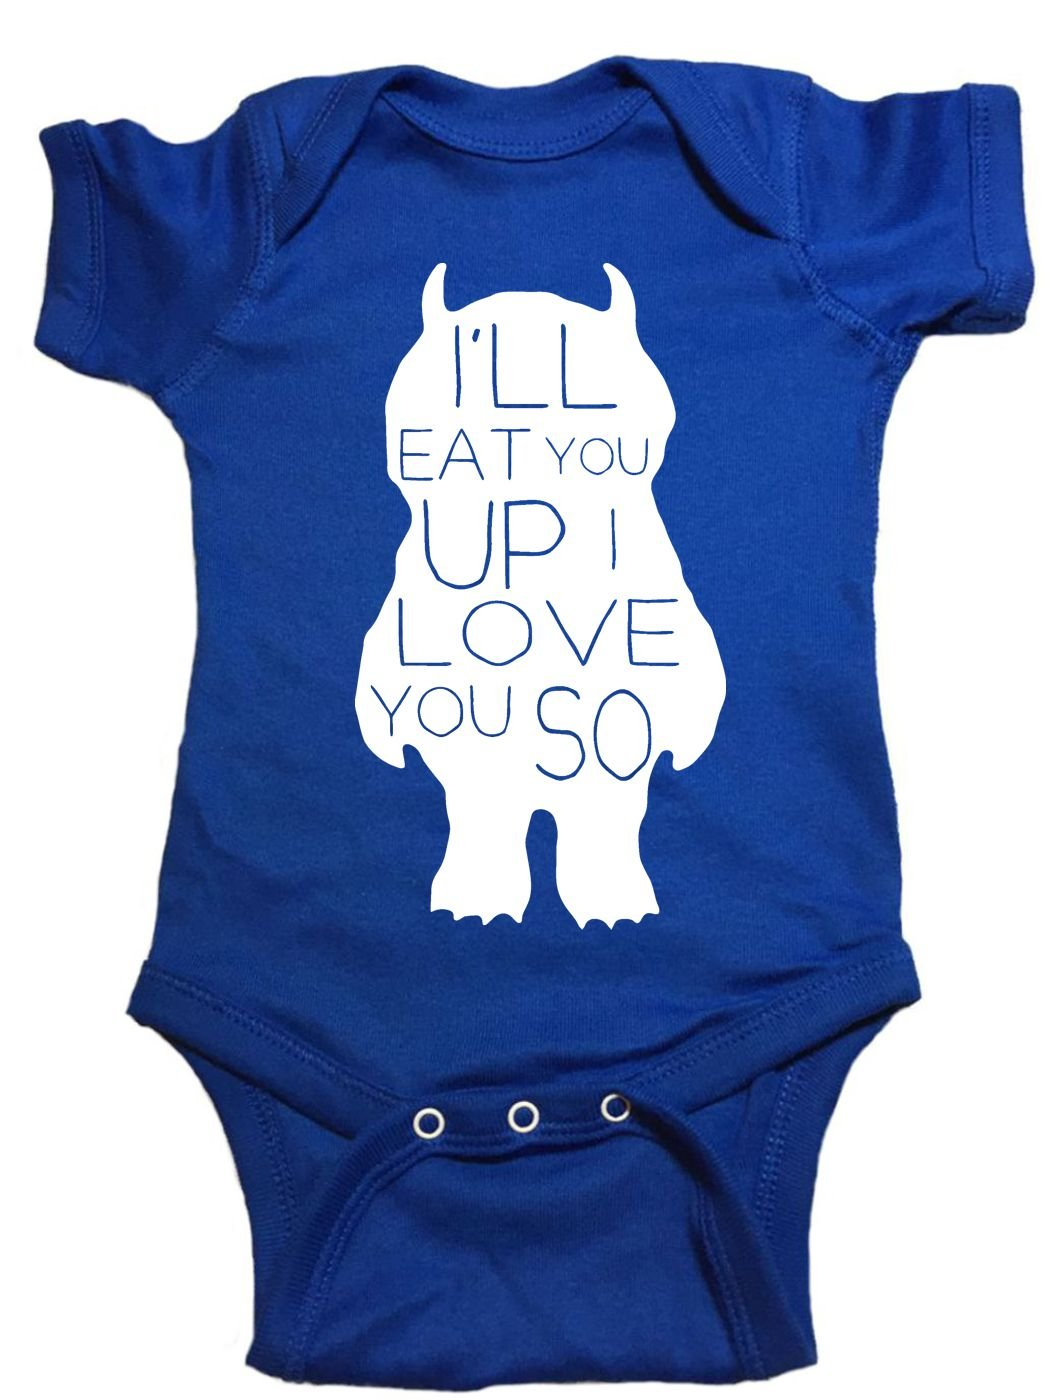 Where The Wild Things Are Baby One Piece ''Love You So'' Bodysuit (18 Month, Blue)